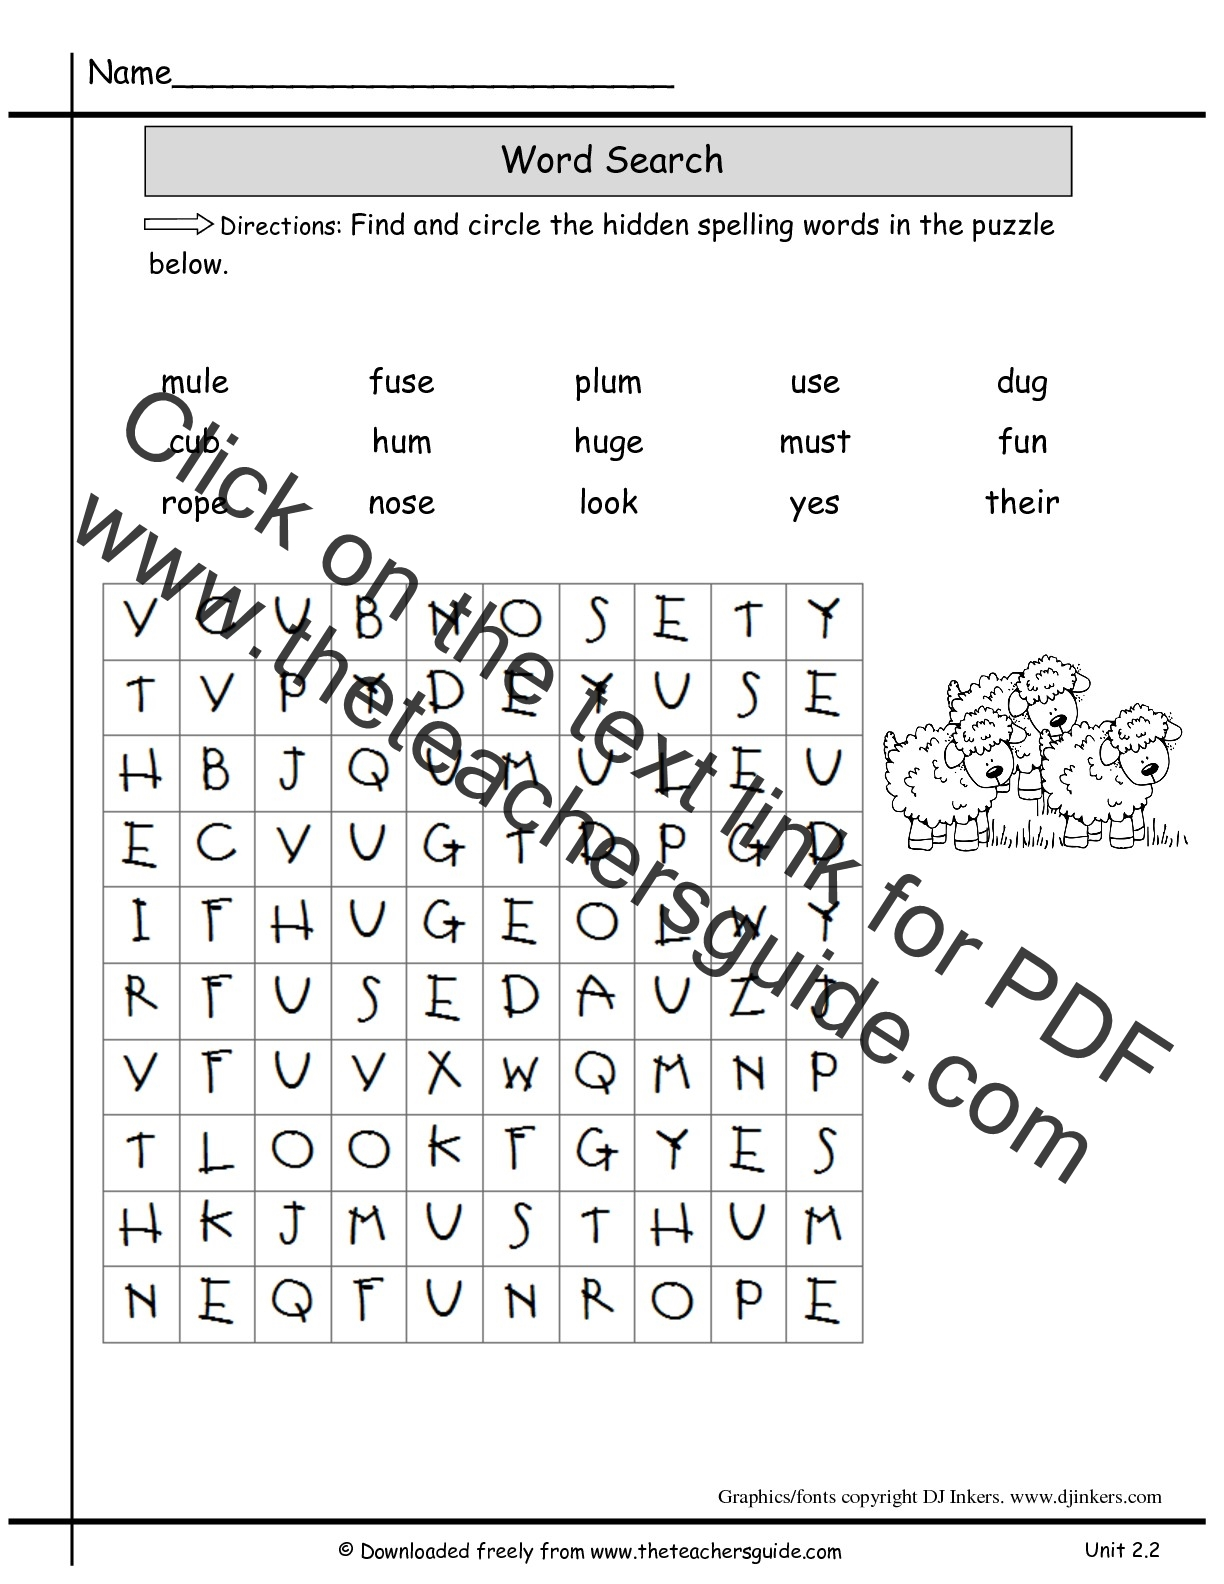 Spelling Vocabulary Worksheets 5th Grade